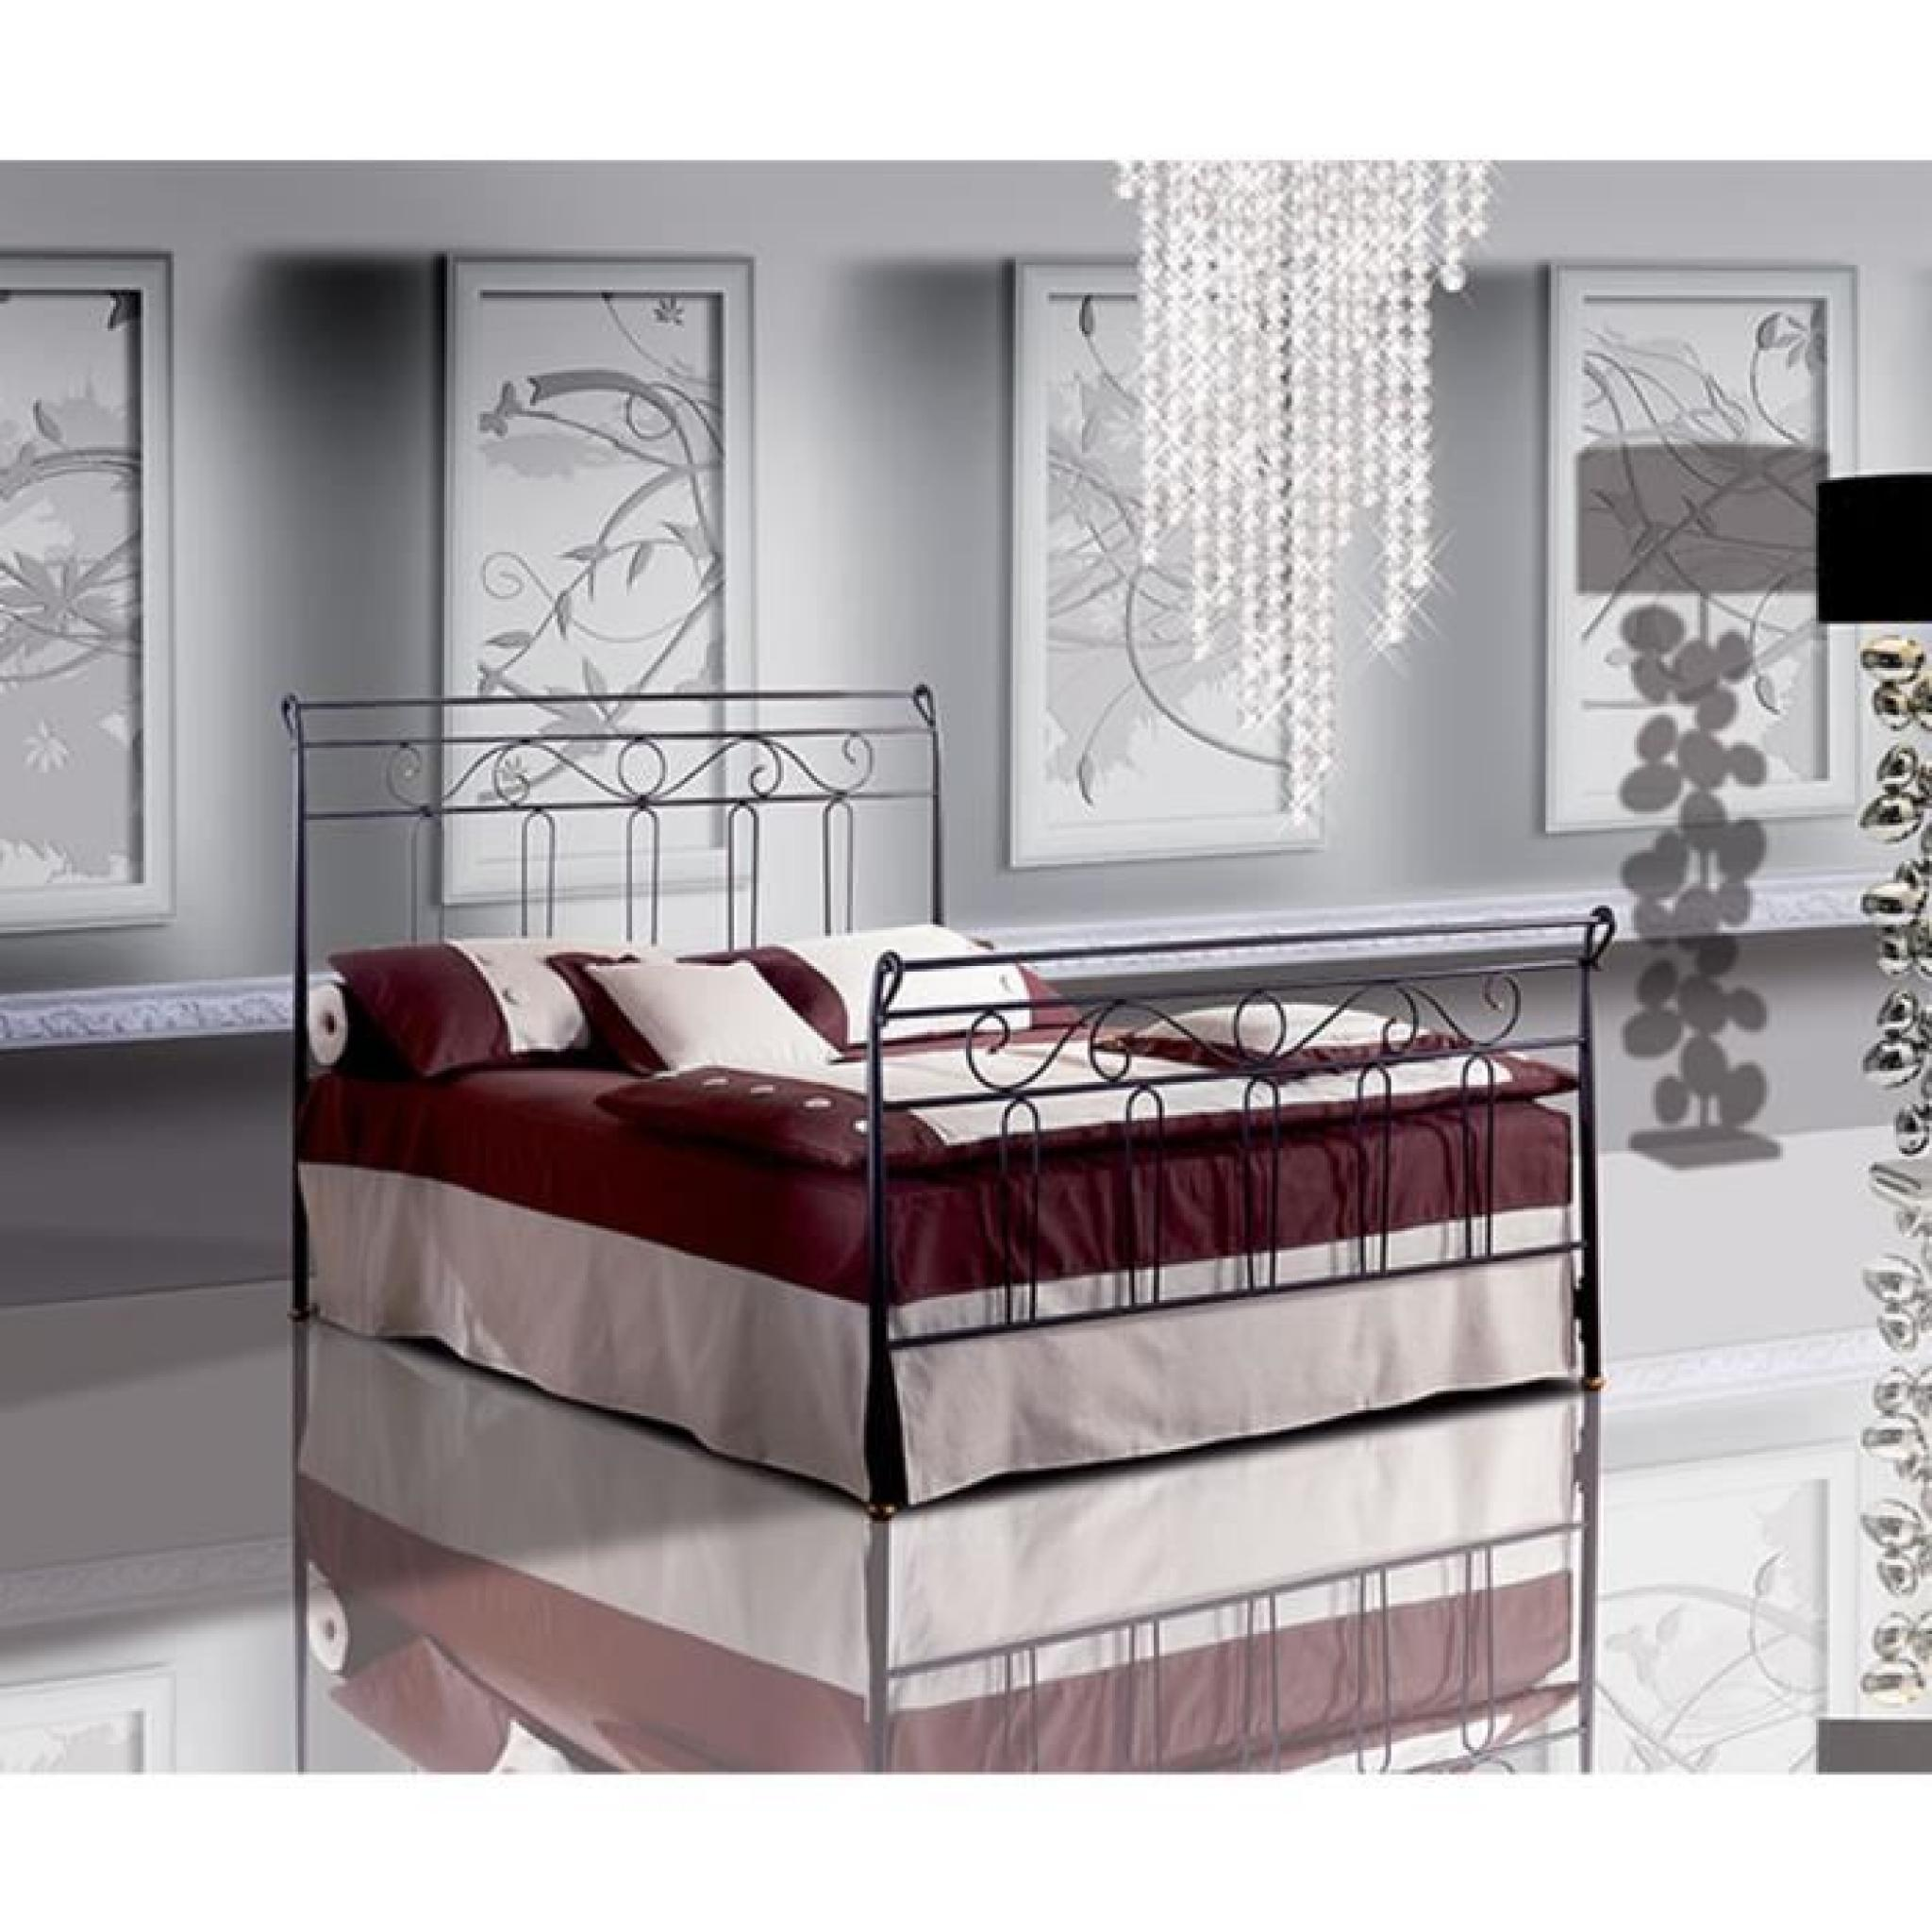 lit deux personnes en fer forg garofano t te de lit pied. Black Bedroom Furniture Sets. Home Design Ideas